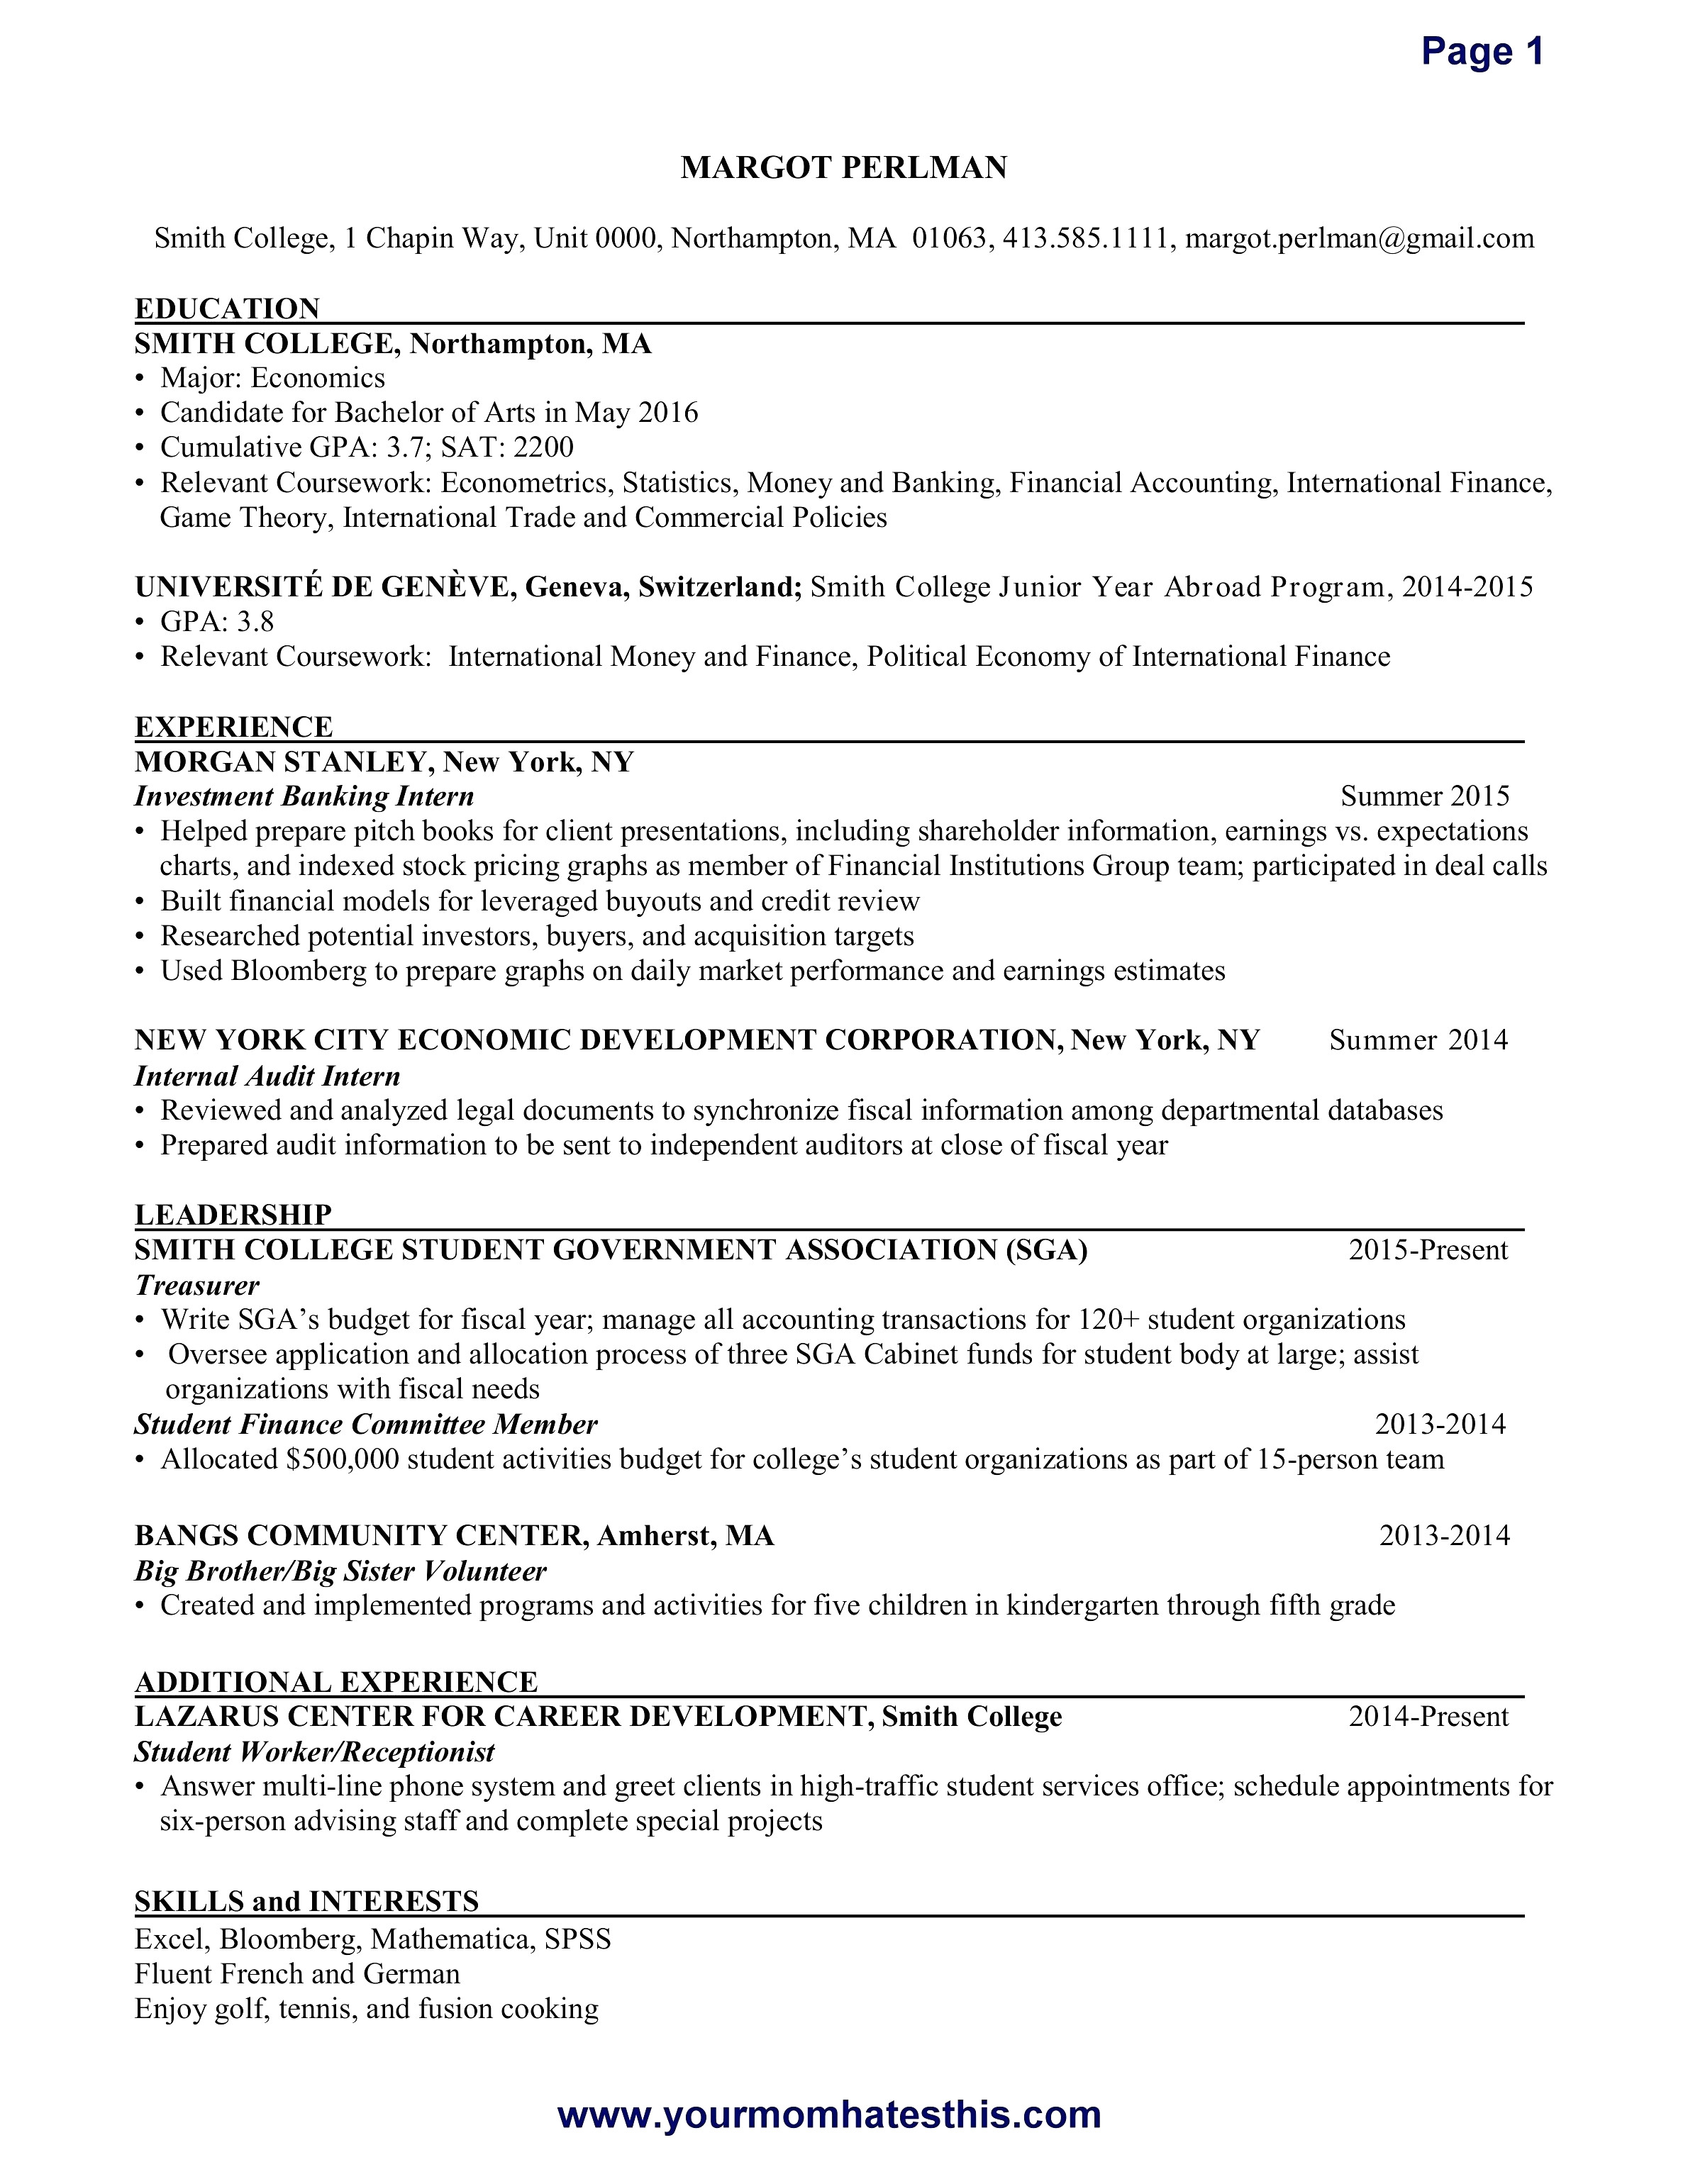 Accounts Receivable Resume Template - 39 Unbelievable Accounts Receivable Resume